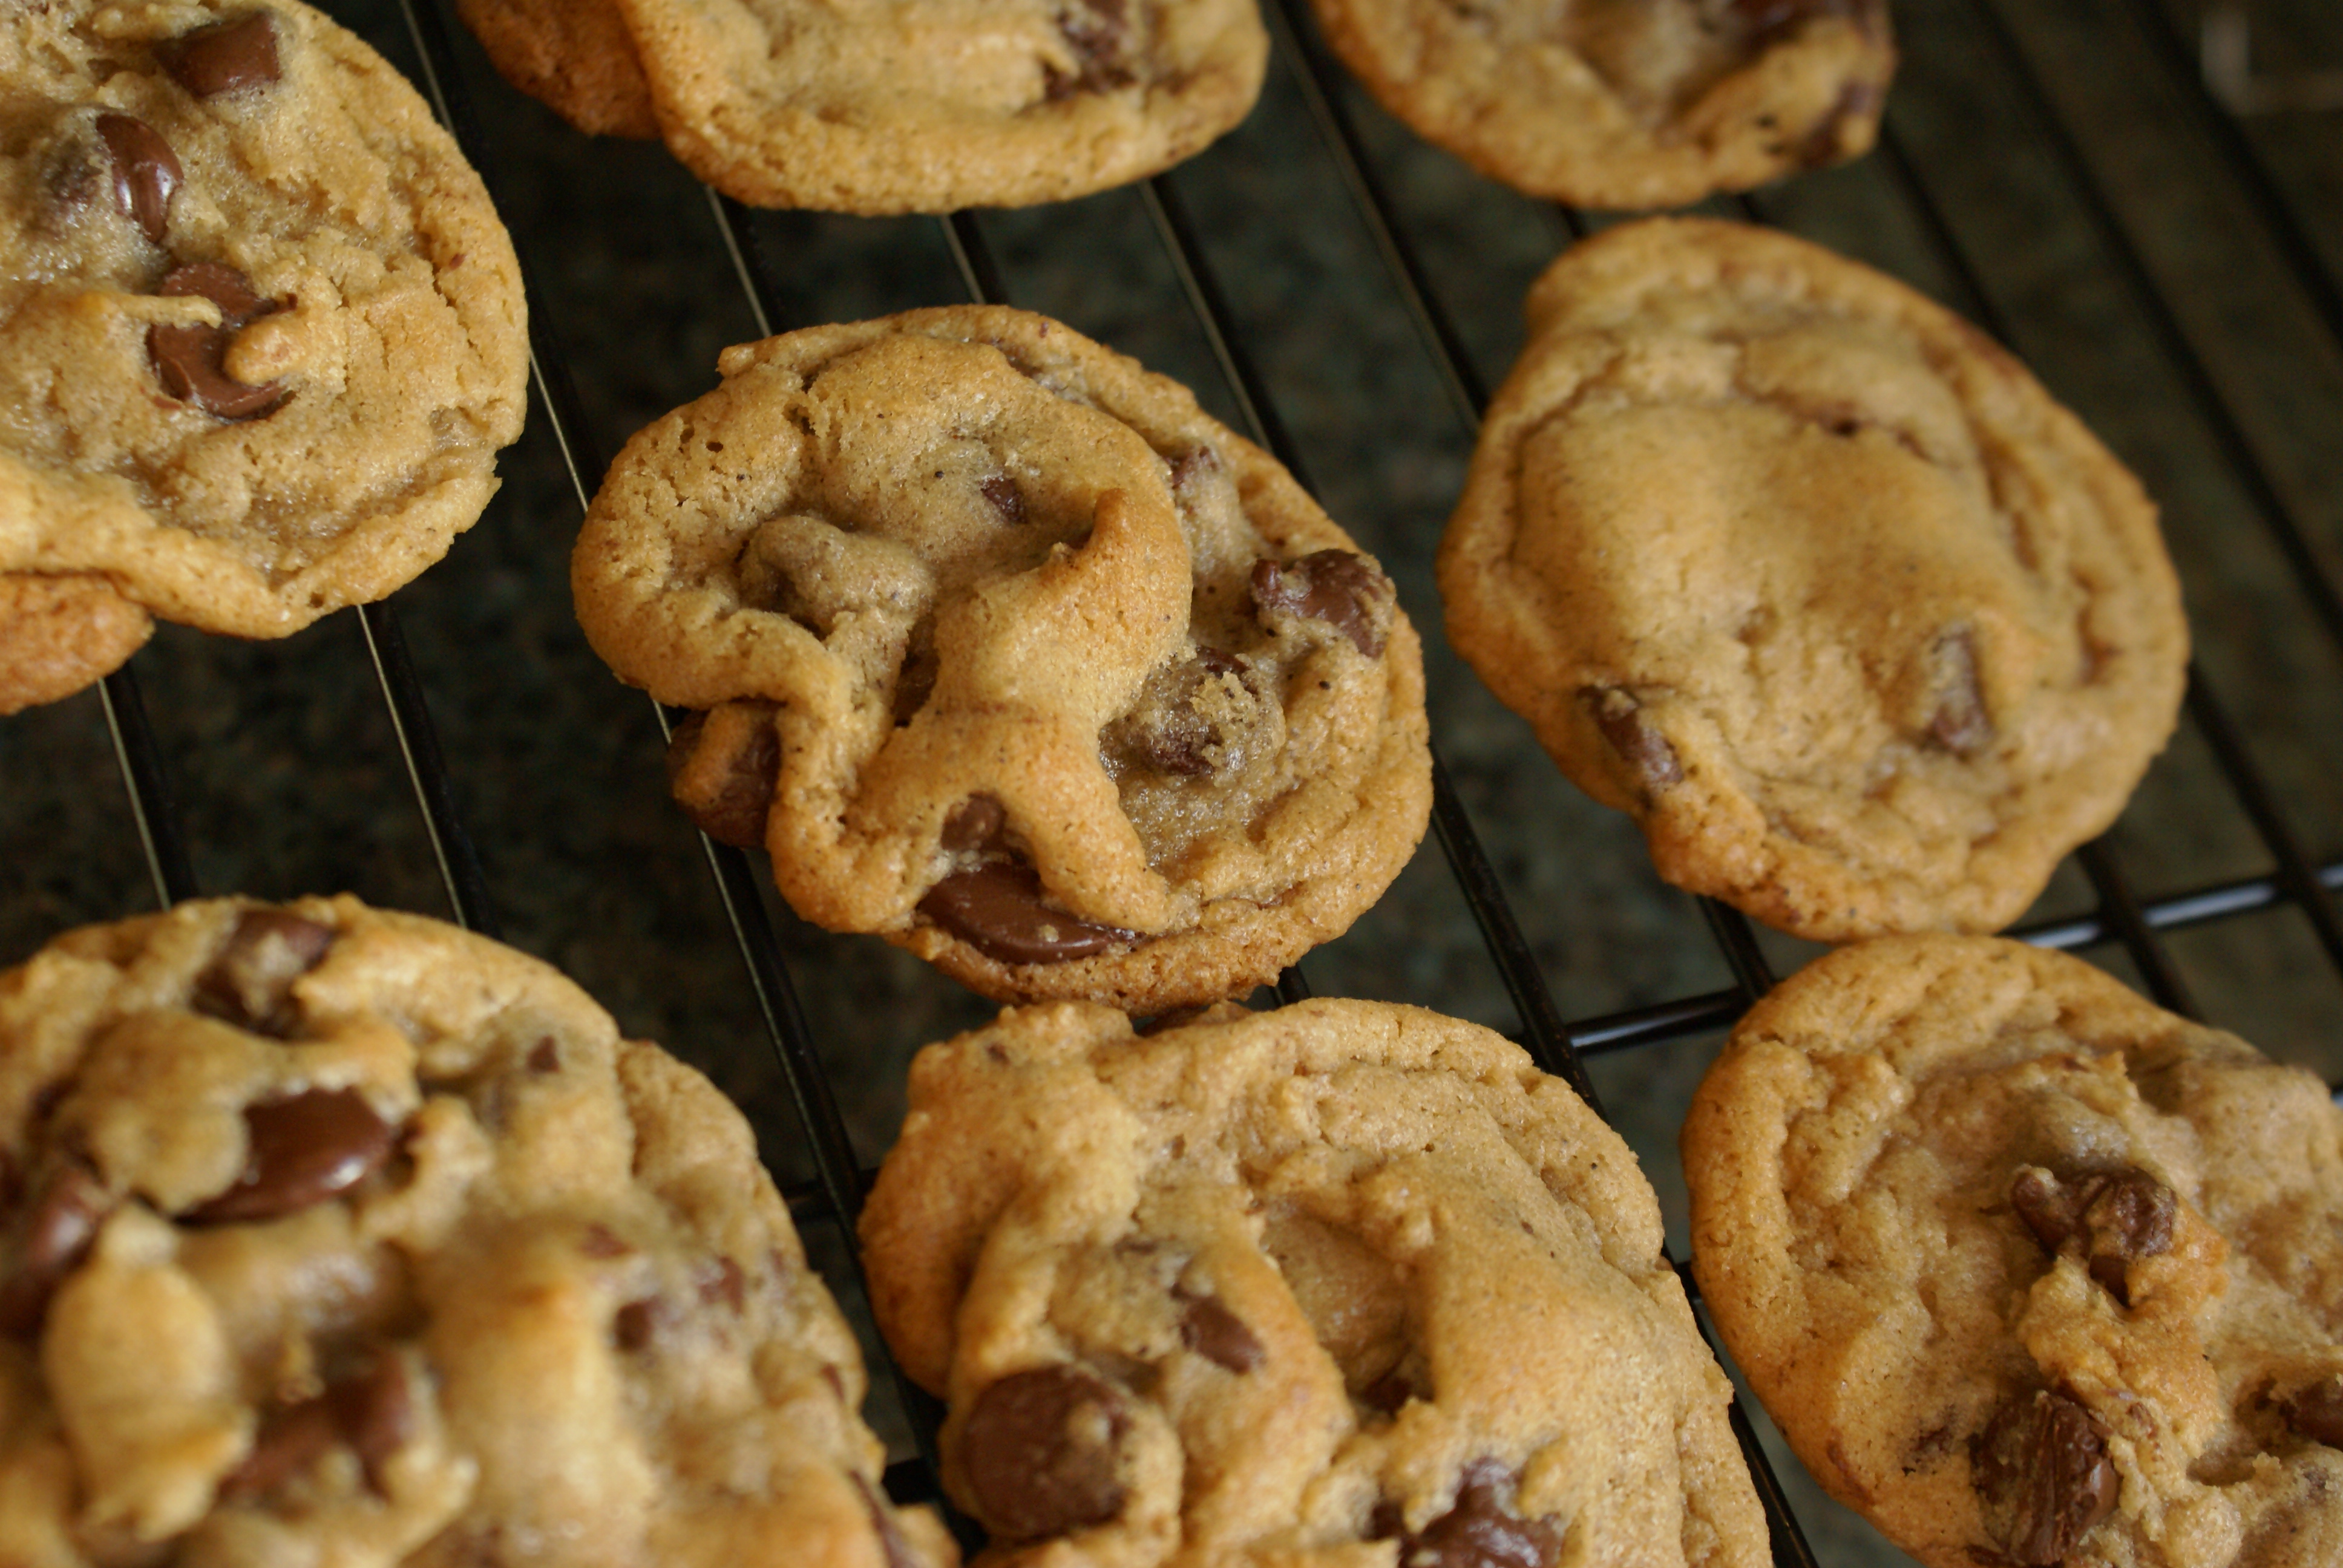 Tasty Tuesday – Browned Butter Chocolate Chip Cookies | Hoping in God